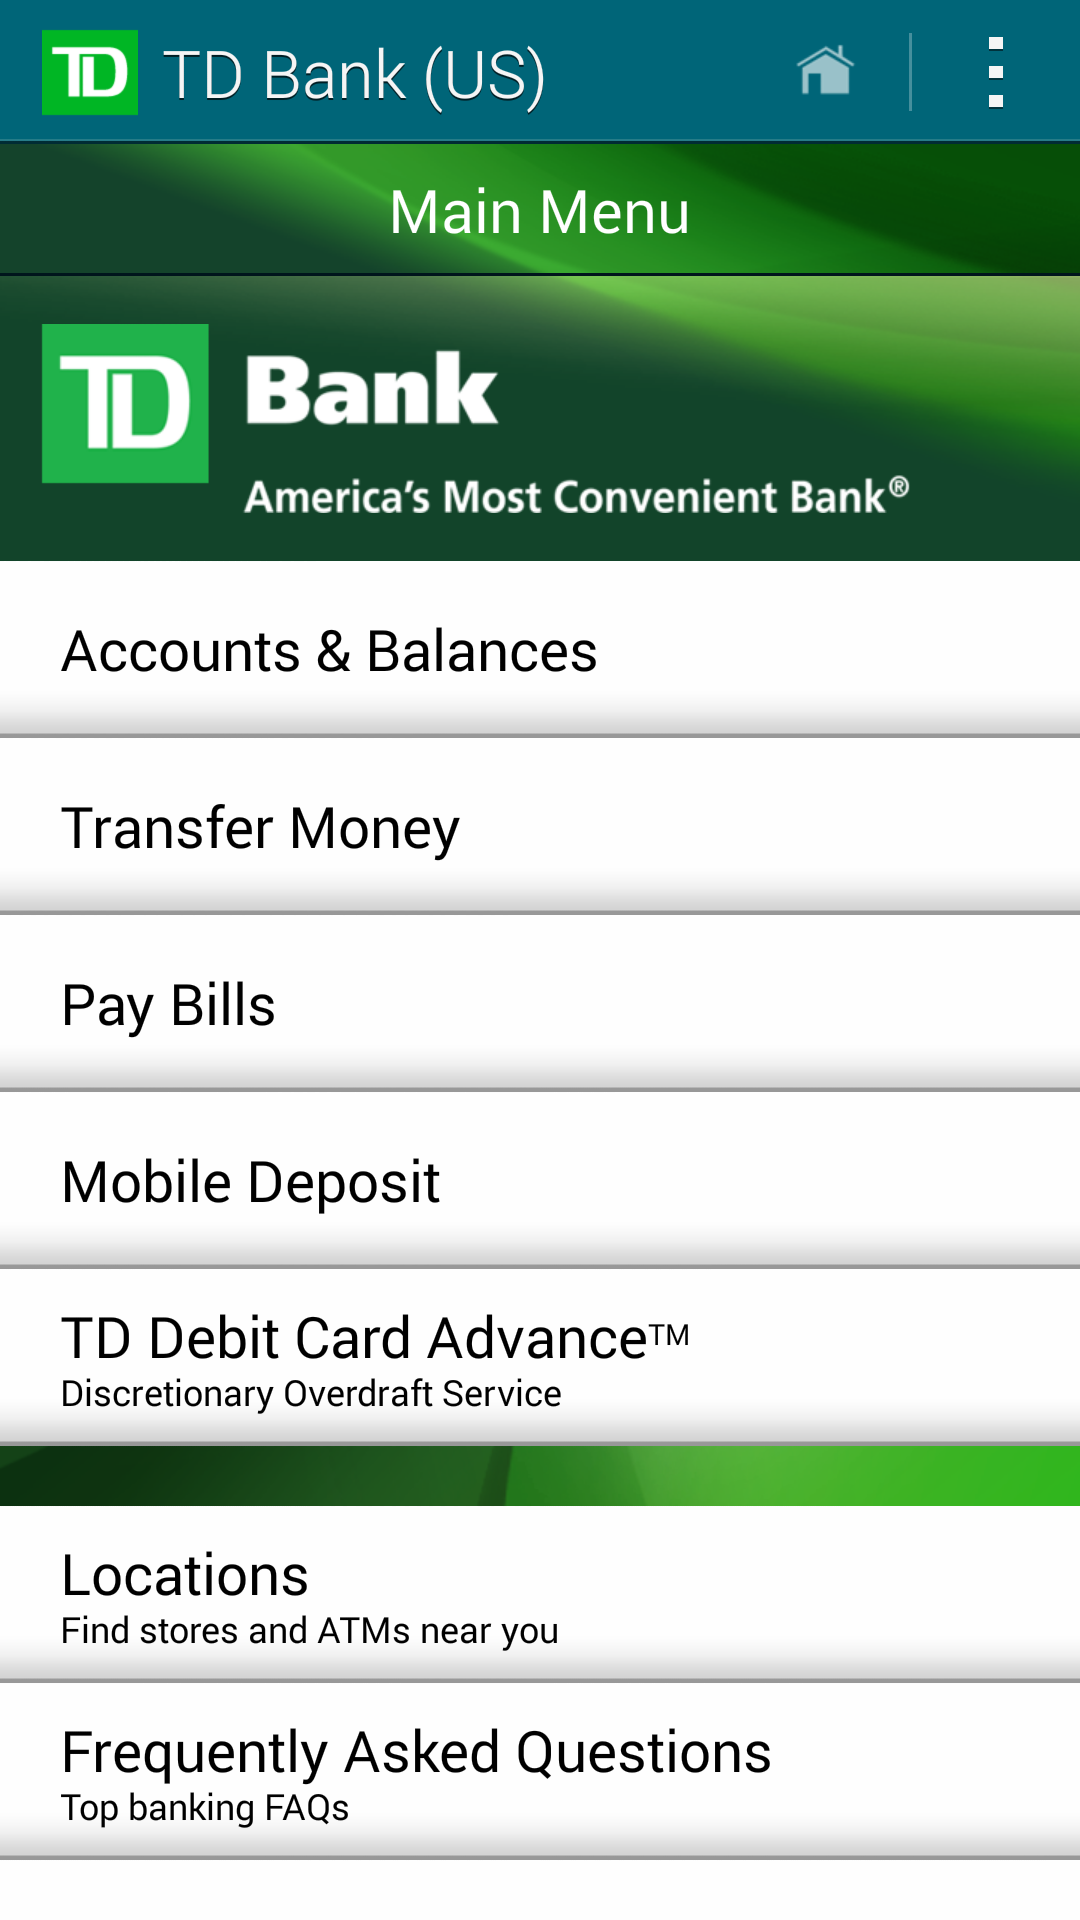 Td bank coupon code : Product marketing deals with how and where to